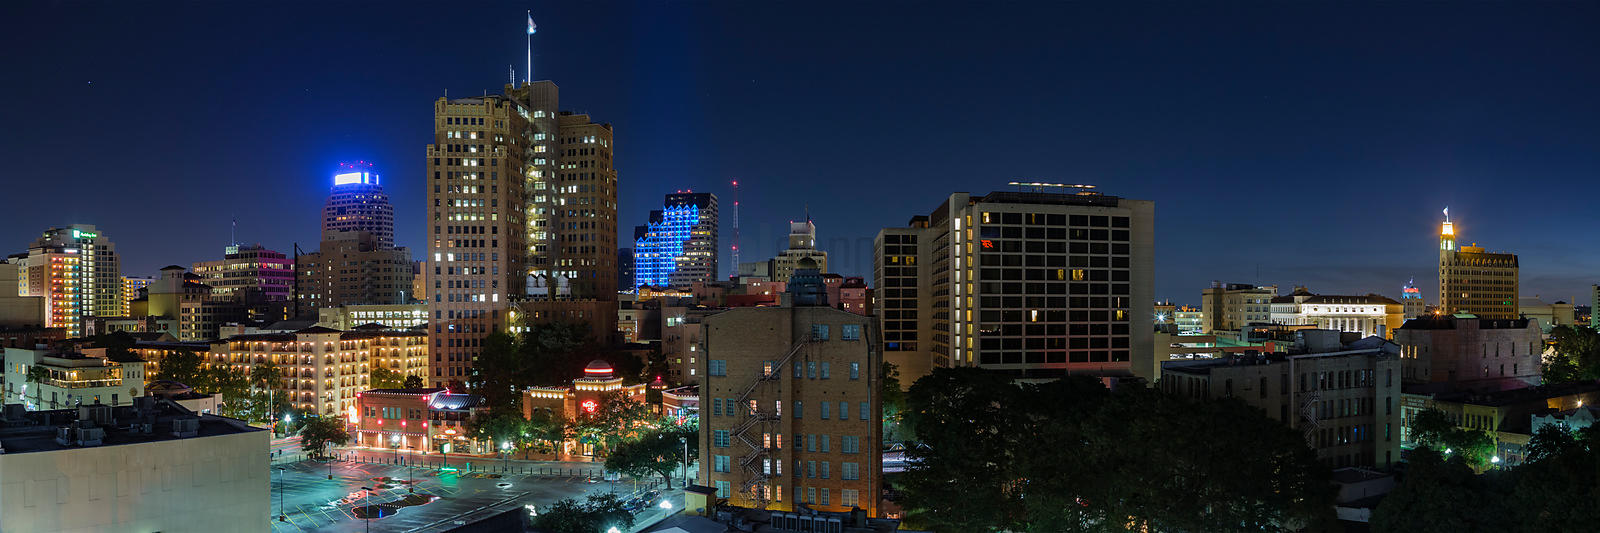 Elevated View of the San Antonio Skyline at Dawn